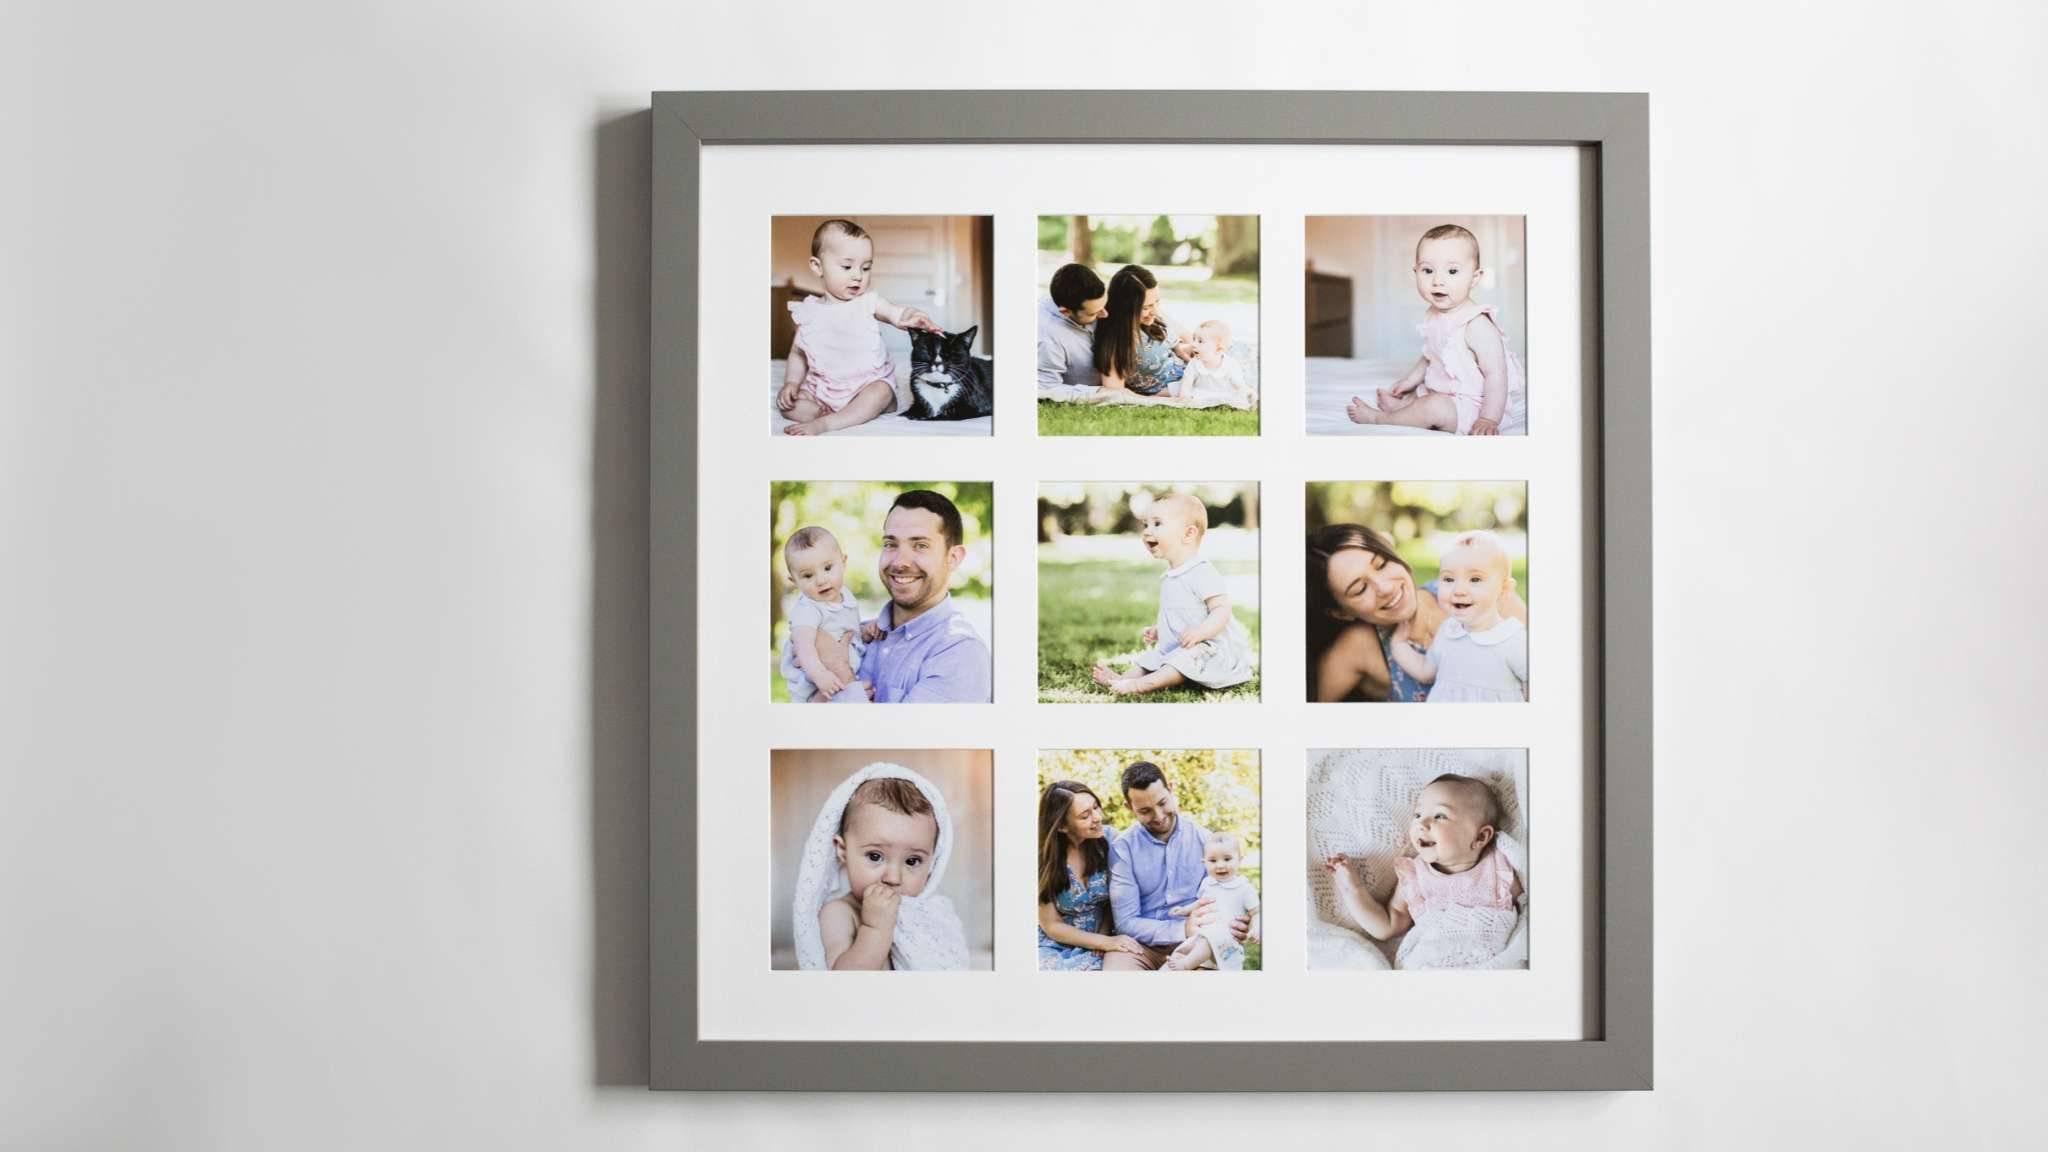 A photo of a framed collection of family portrait photos / family portrait photo montage